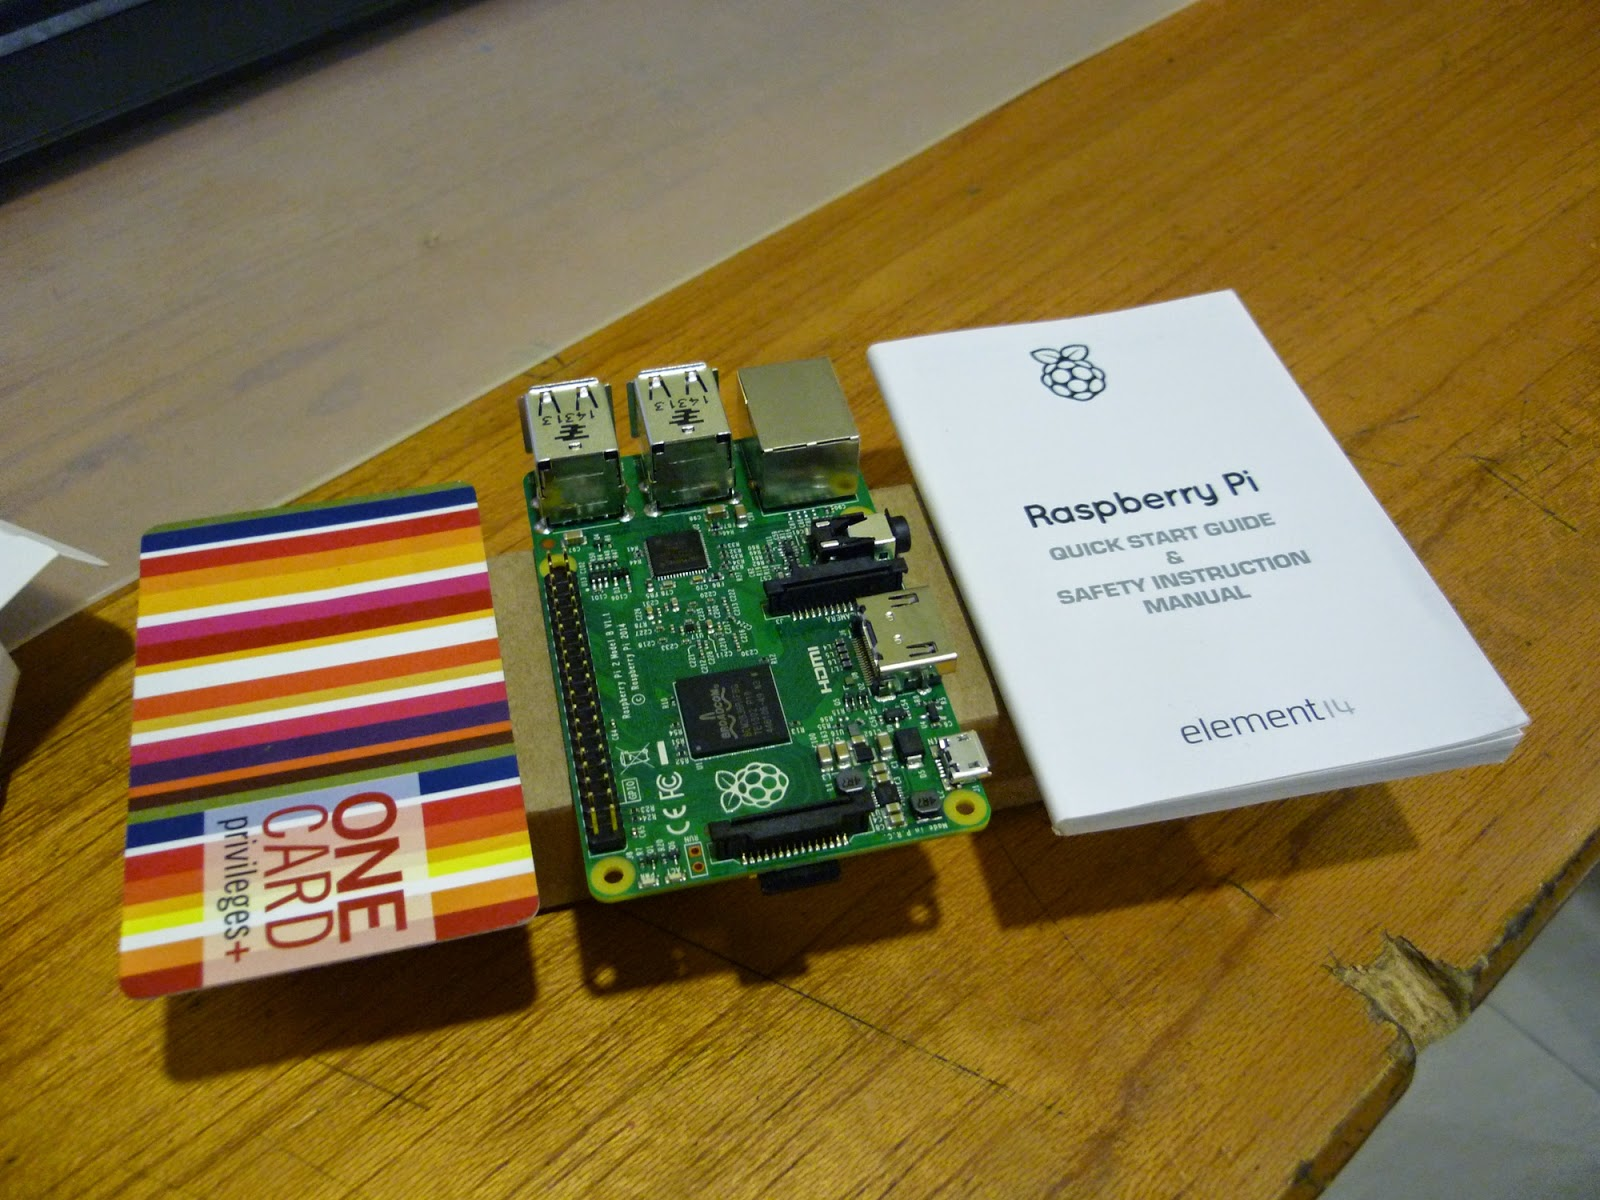 raspbery-pi-2-size-comparison-credit-card-quick-start-guide